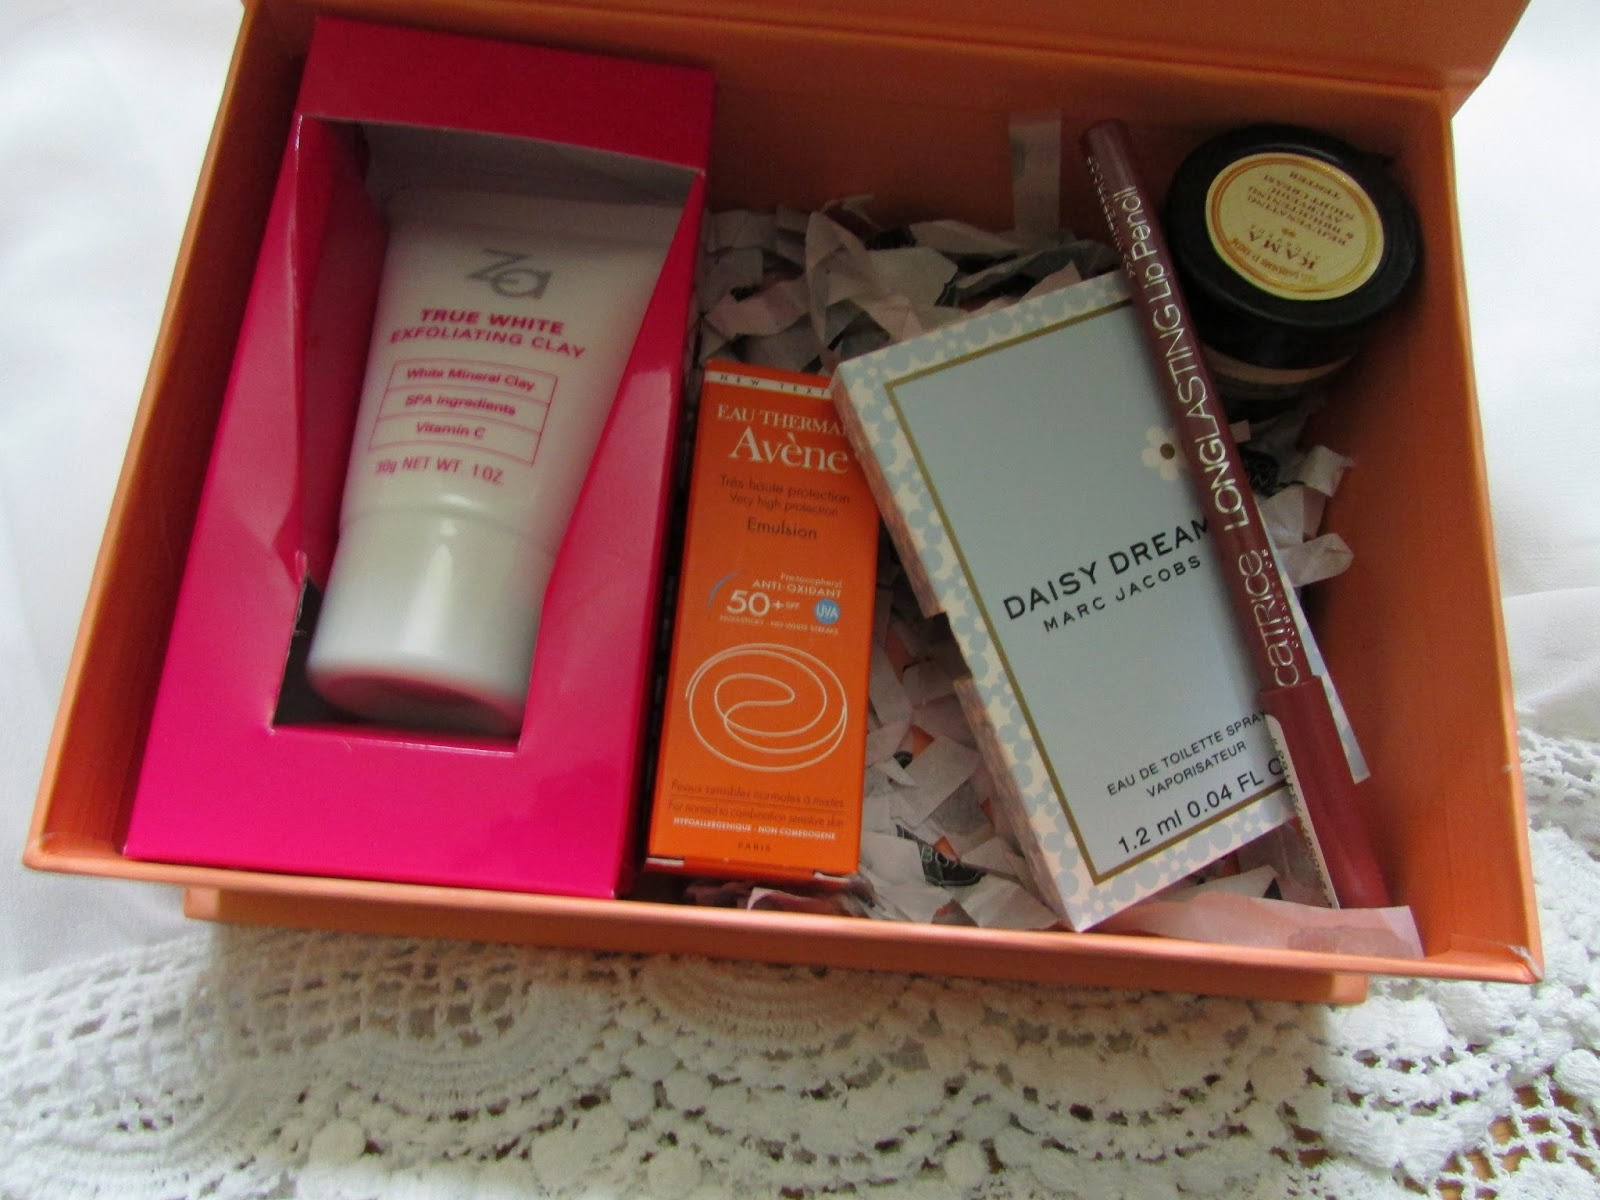 myenvybox, myenvybox india, myenvybox april, myenvybox price, myenvybox review, myenvybox unboxing,Catrice Longlasting Lip Pencil, KAMA Ayurveda Rejuvenating and Brightening Ayurvedic Night Cream, Daisy Dream by Marc Jacobs, Avene Sunscreen VHP SPF50+ Dry Touch Eulsion,ZA True White Exfoliating Clay,fashion,beauty and fashion,beauty blog, fashion blog , indian beauty blog,indian fashion blog, beauty and fashion blog, indian beauty and fashion blog, indian bloggers, indian beauty bloggers, indian fashion bloggers,indian bloggers online, top 10 indian bloggers, top indian bloggers,top 10 fashion bloggers, indian bloggers on blogspot,home remedies, how to